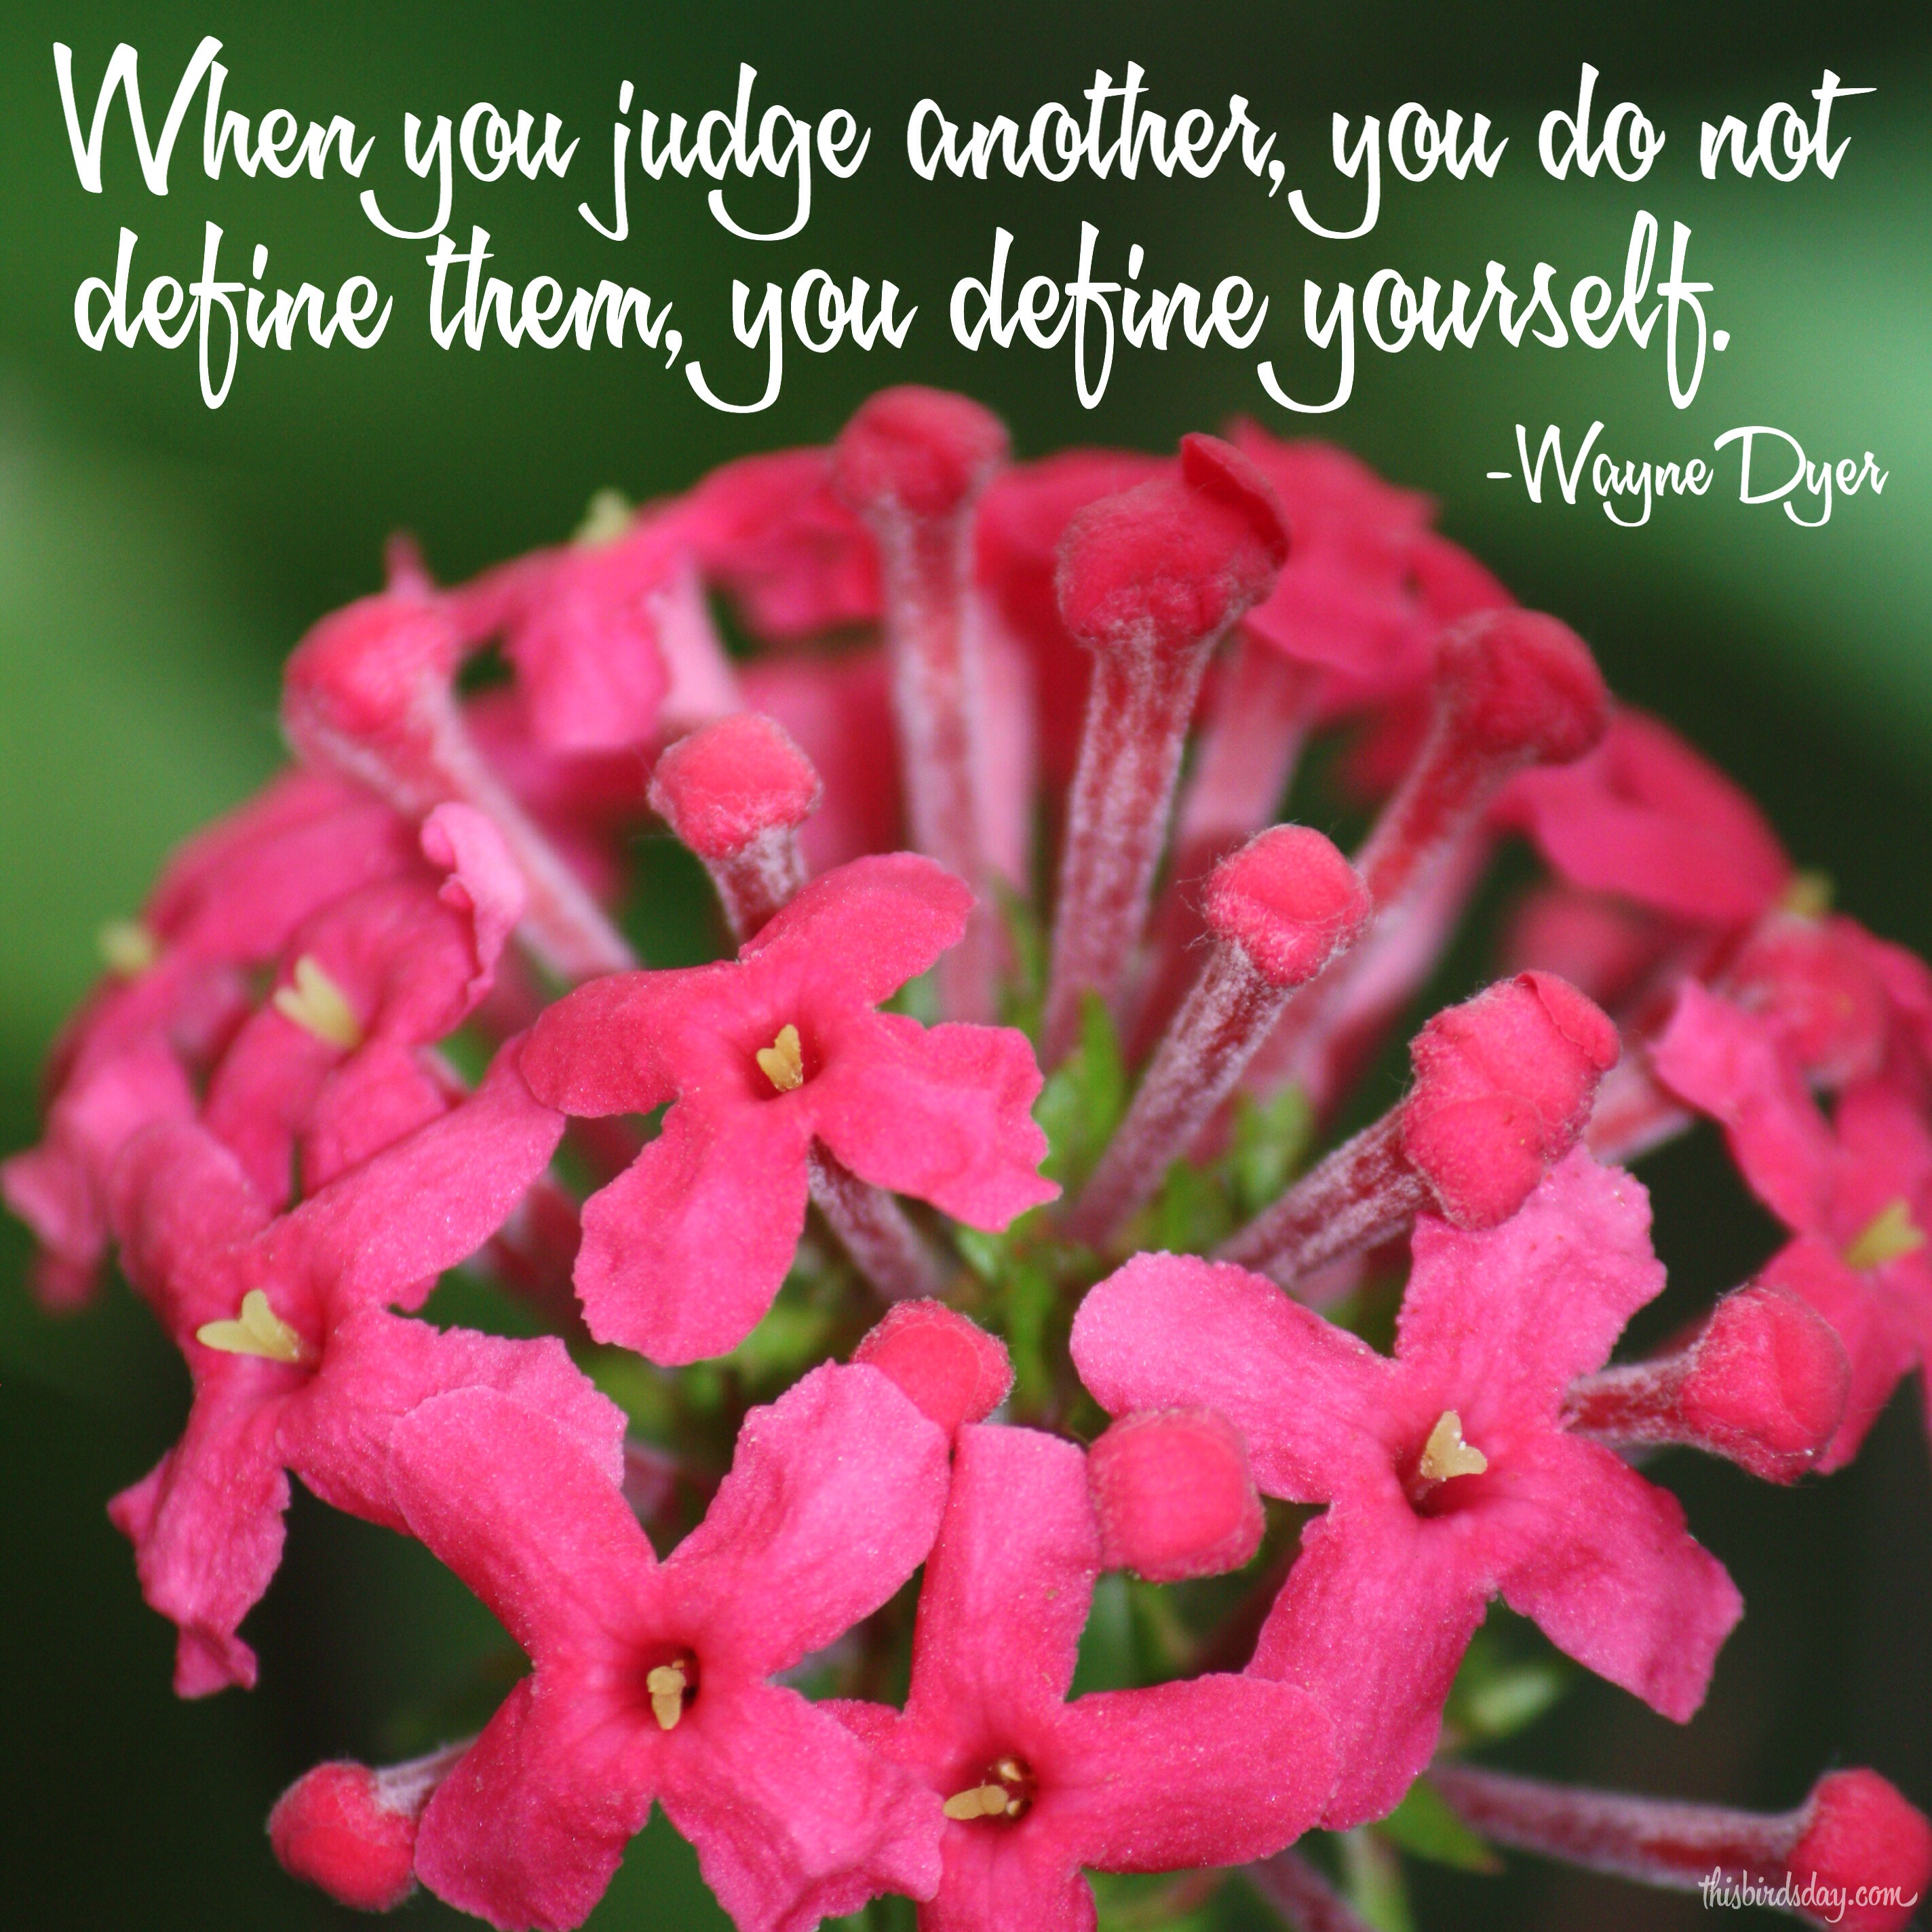 """When you judge another, you do not define them, you define yourself."" Wayne Dyer Photo copyrights Sheri Landry"